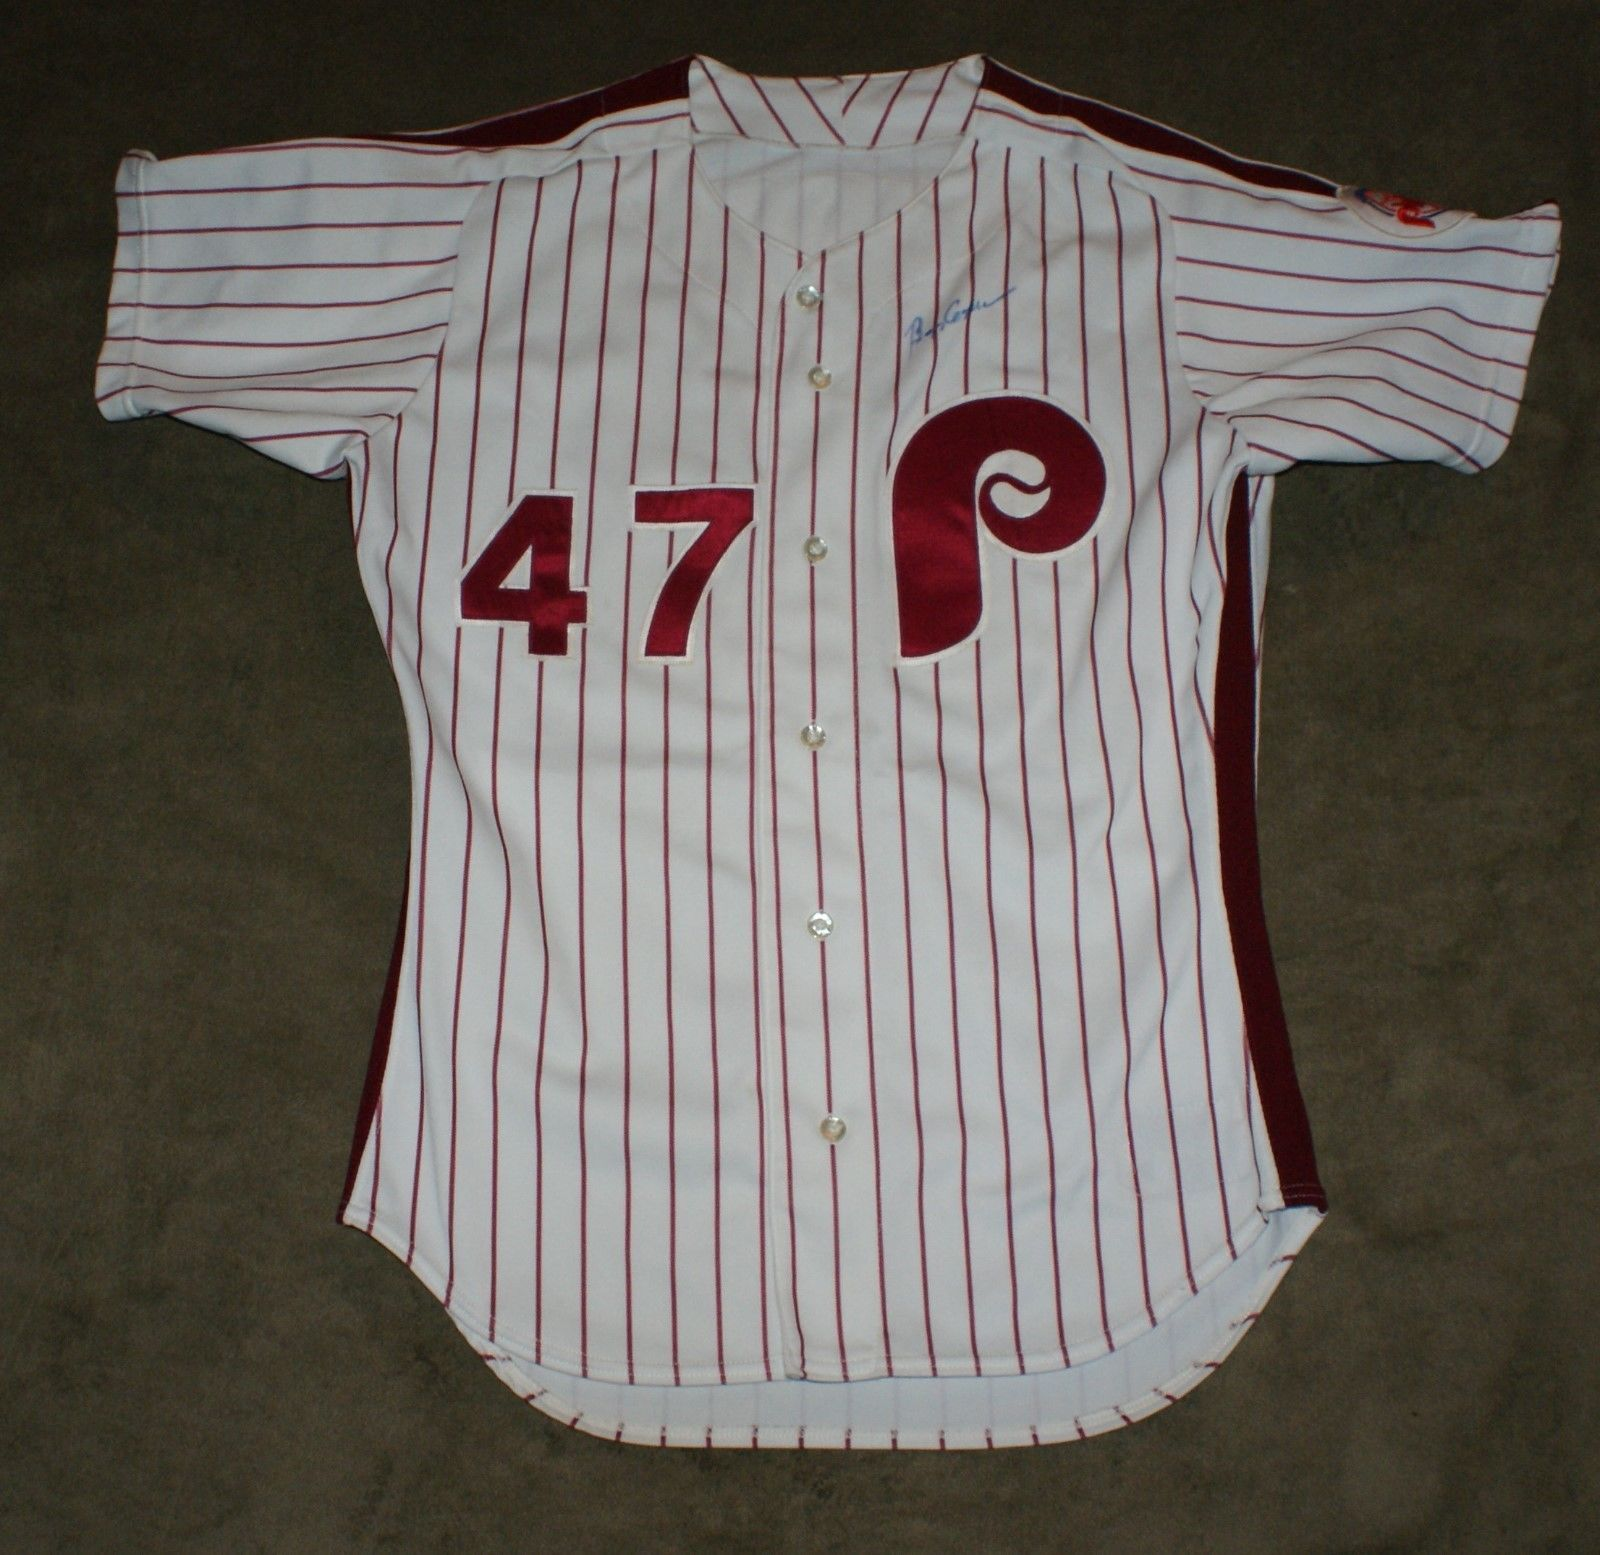 cool 1991 Phillies Buzz Capra Signed Autographed Game Used Worn Uniform JSA   Check more at http://harmonisproduction.com/1991-phillies-buzz-capra-signed-autographed-game-used-worn-uniform-jsa/